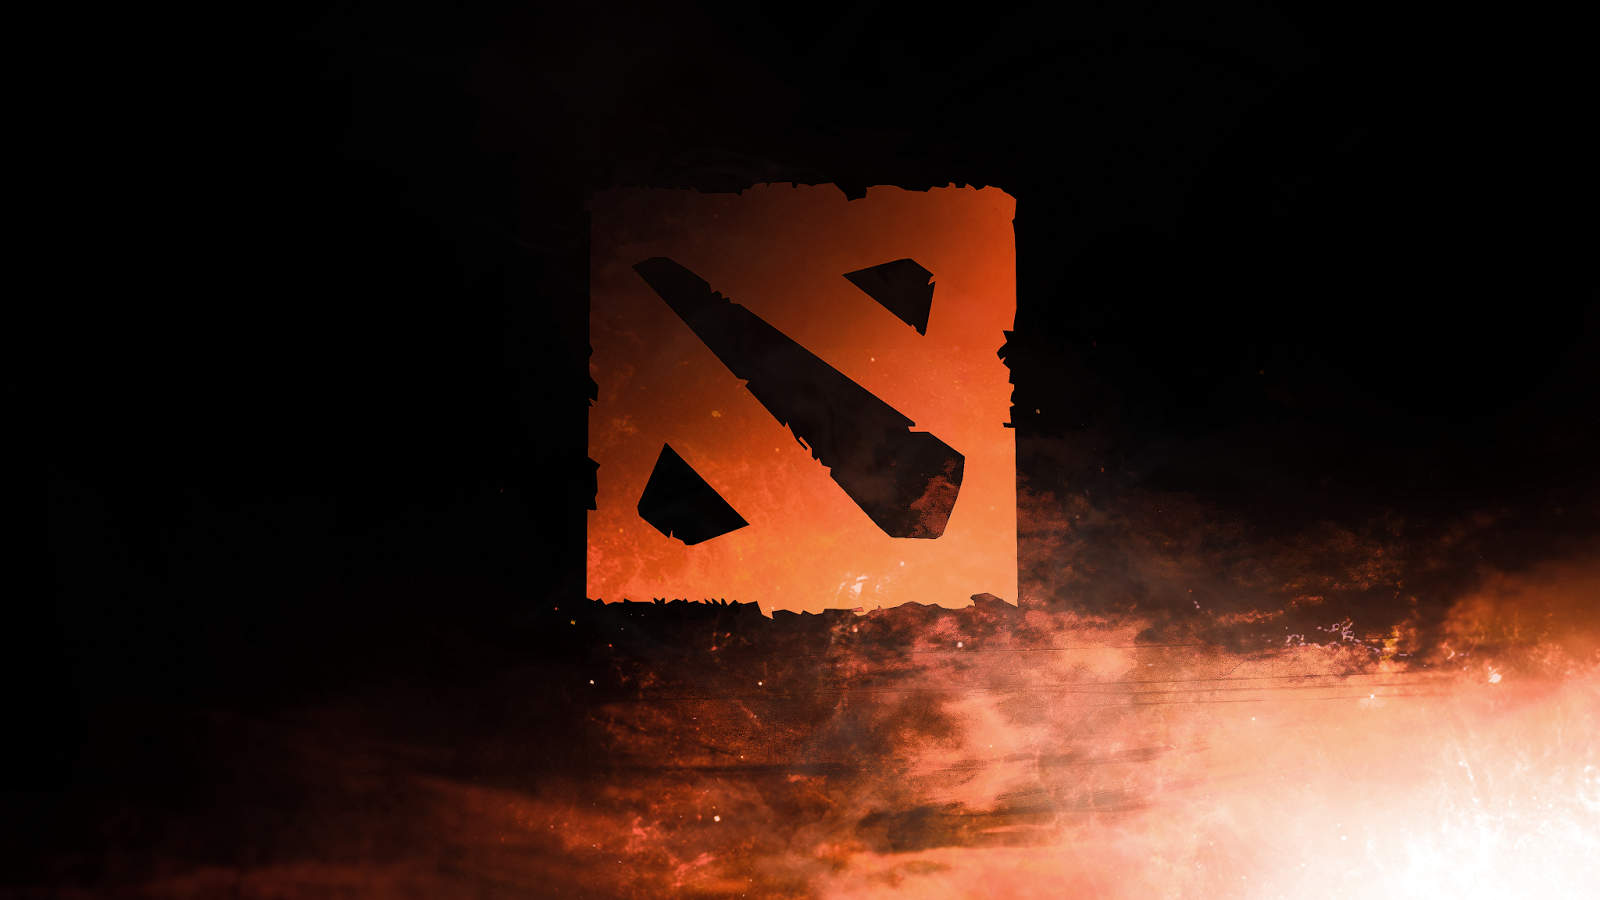 dota 2 wallpapers dota2 wallpaper dota2 logo 2160p by